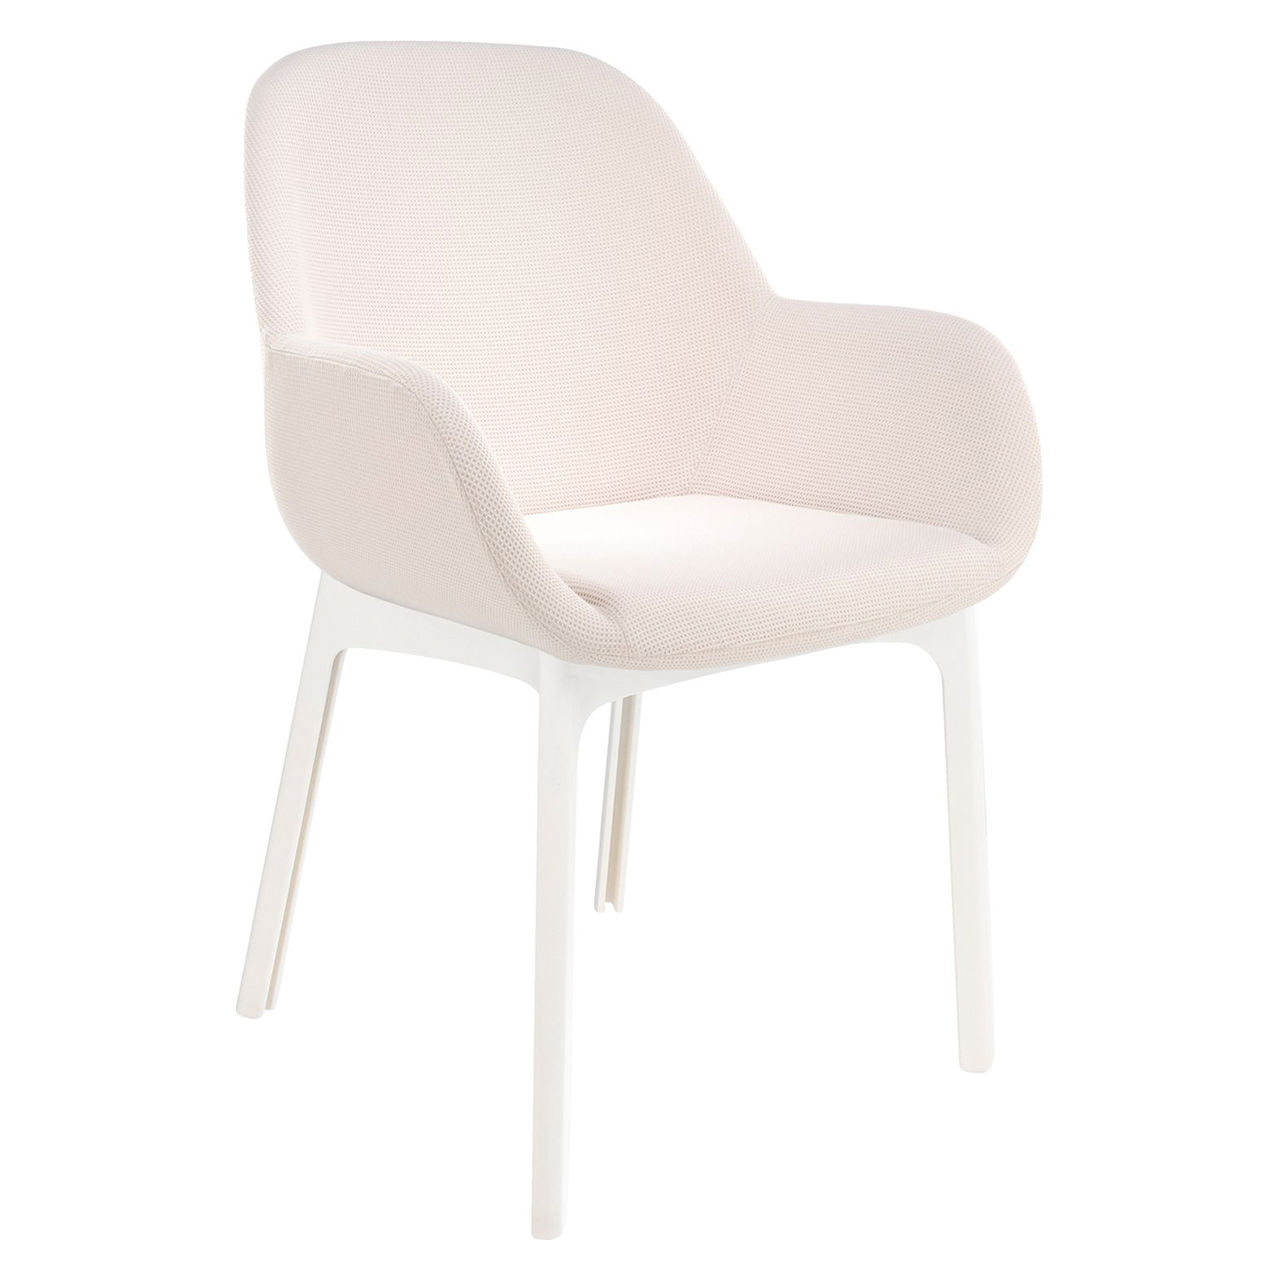 Clap Solid Chair in Trevira Beige by Kartell